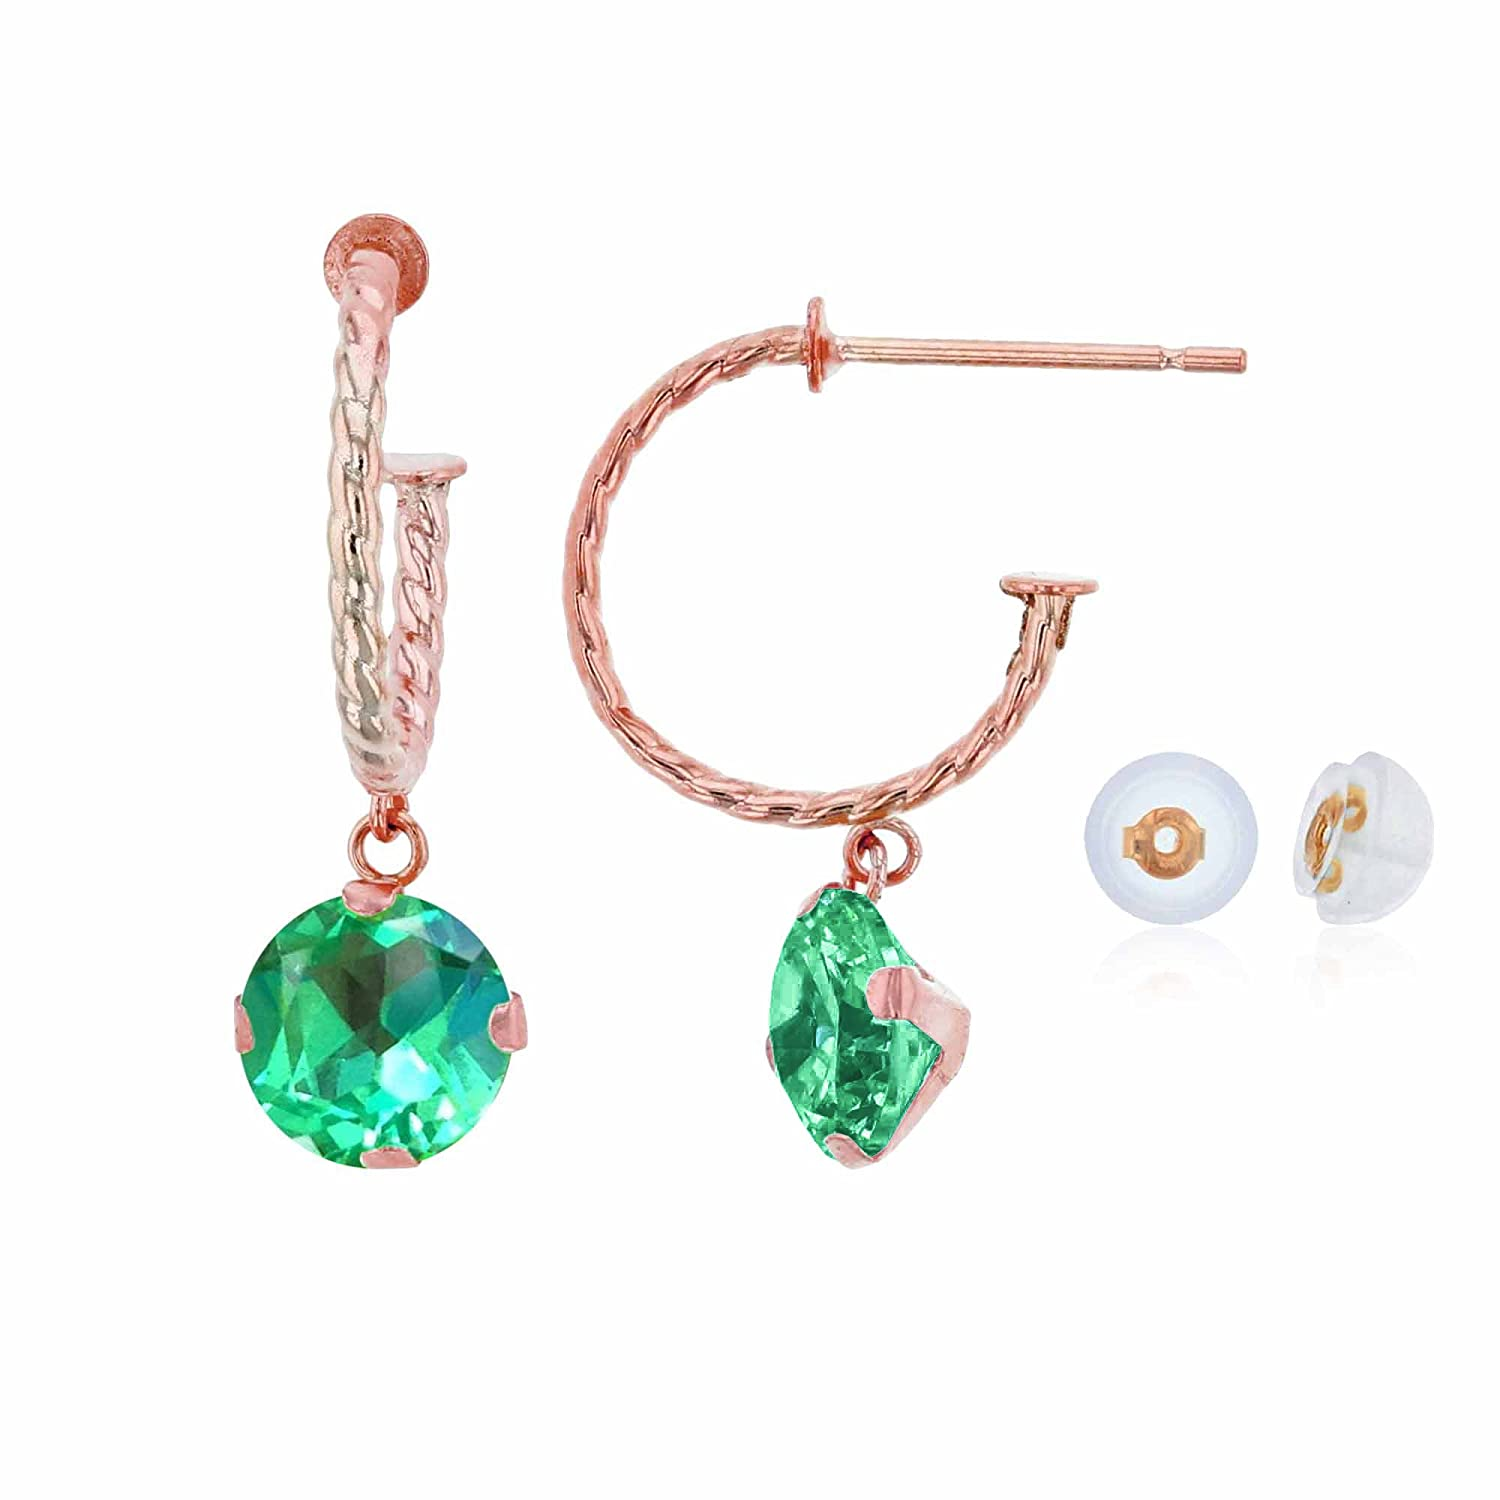 10K Rose Gold 12mm Rope Half-Hoop with 6mm Round Created Green Sapphire Martini Drop Earring with Silicone Back